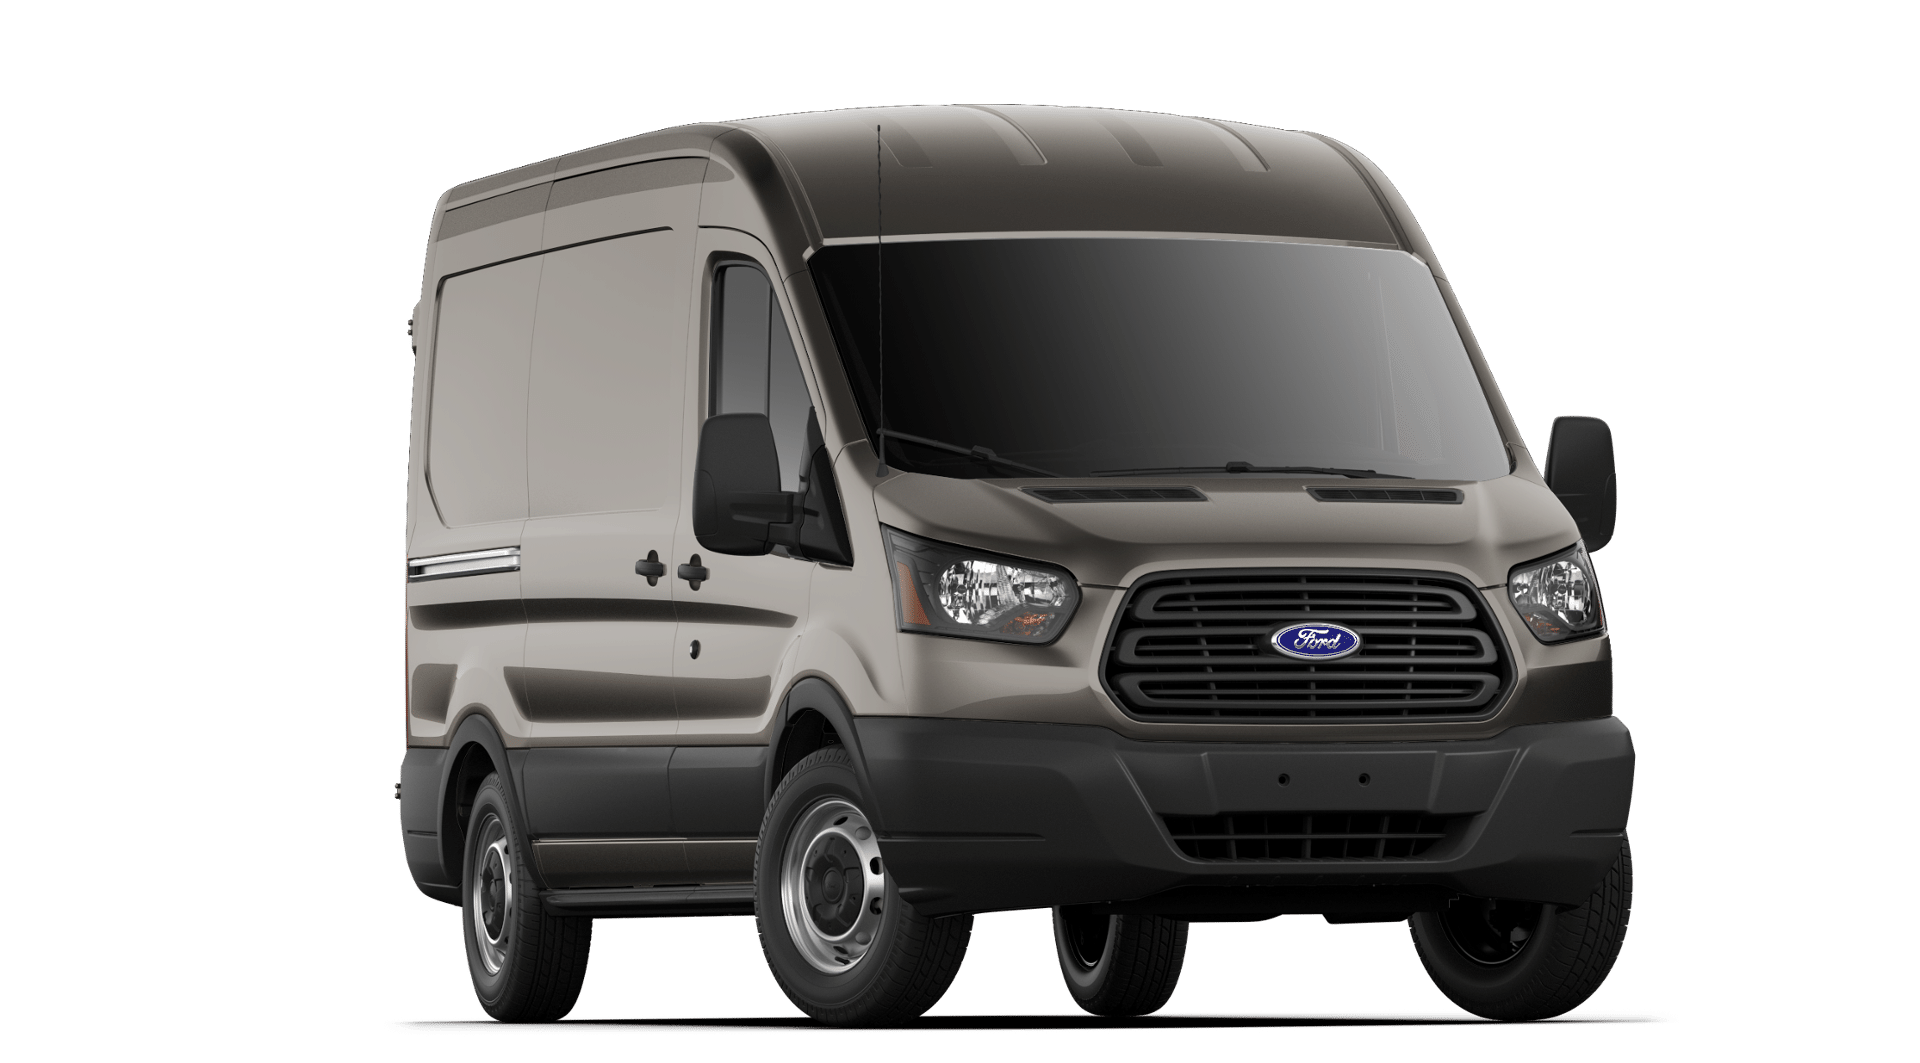 2019 Ford Transit Regular WB Medium Roof 3.2L Diesel Stone Grey